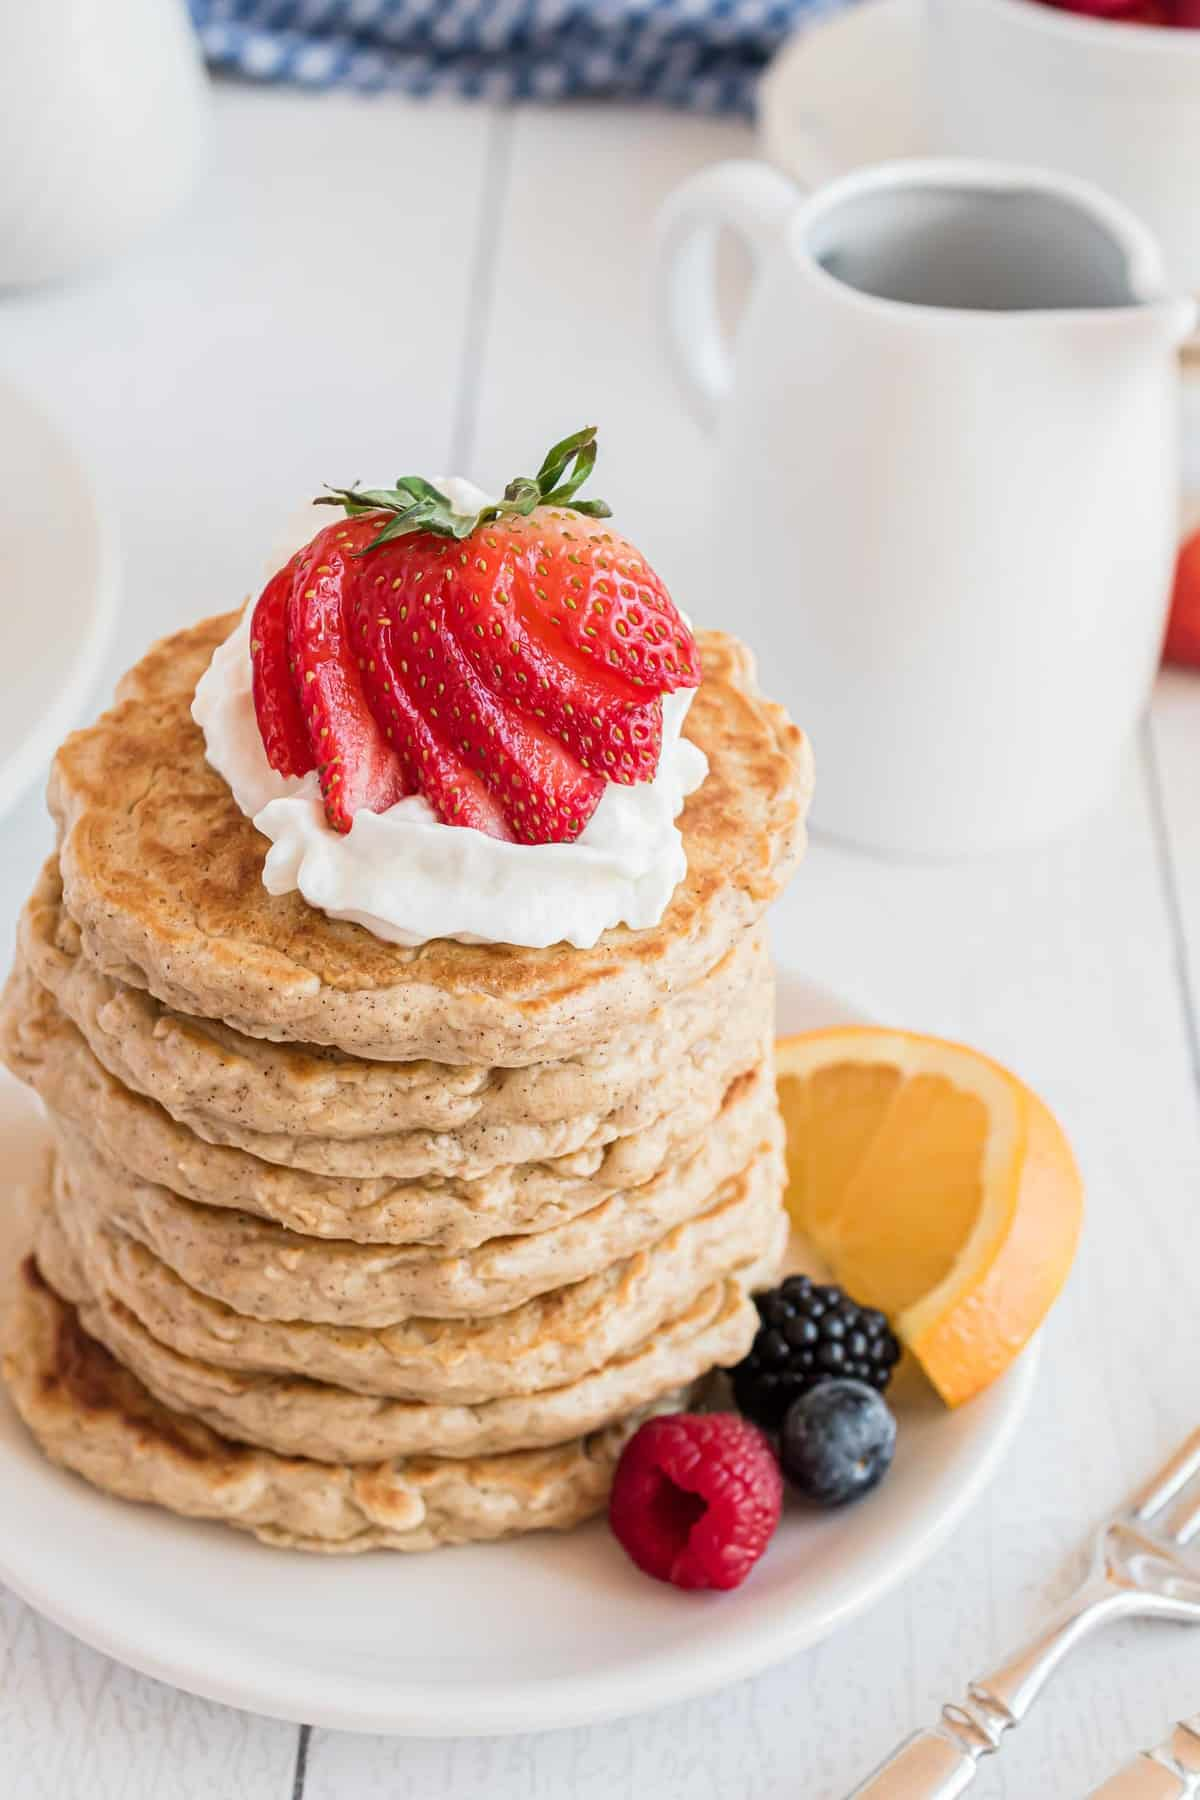 Oatmeal pancakes in a tall stack, topped with whipped cream and a strawberry.